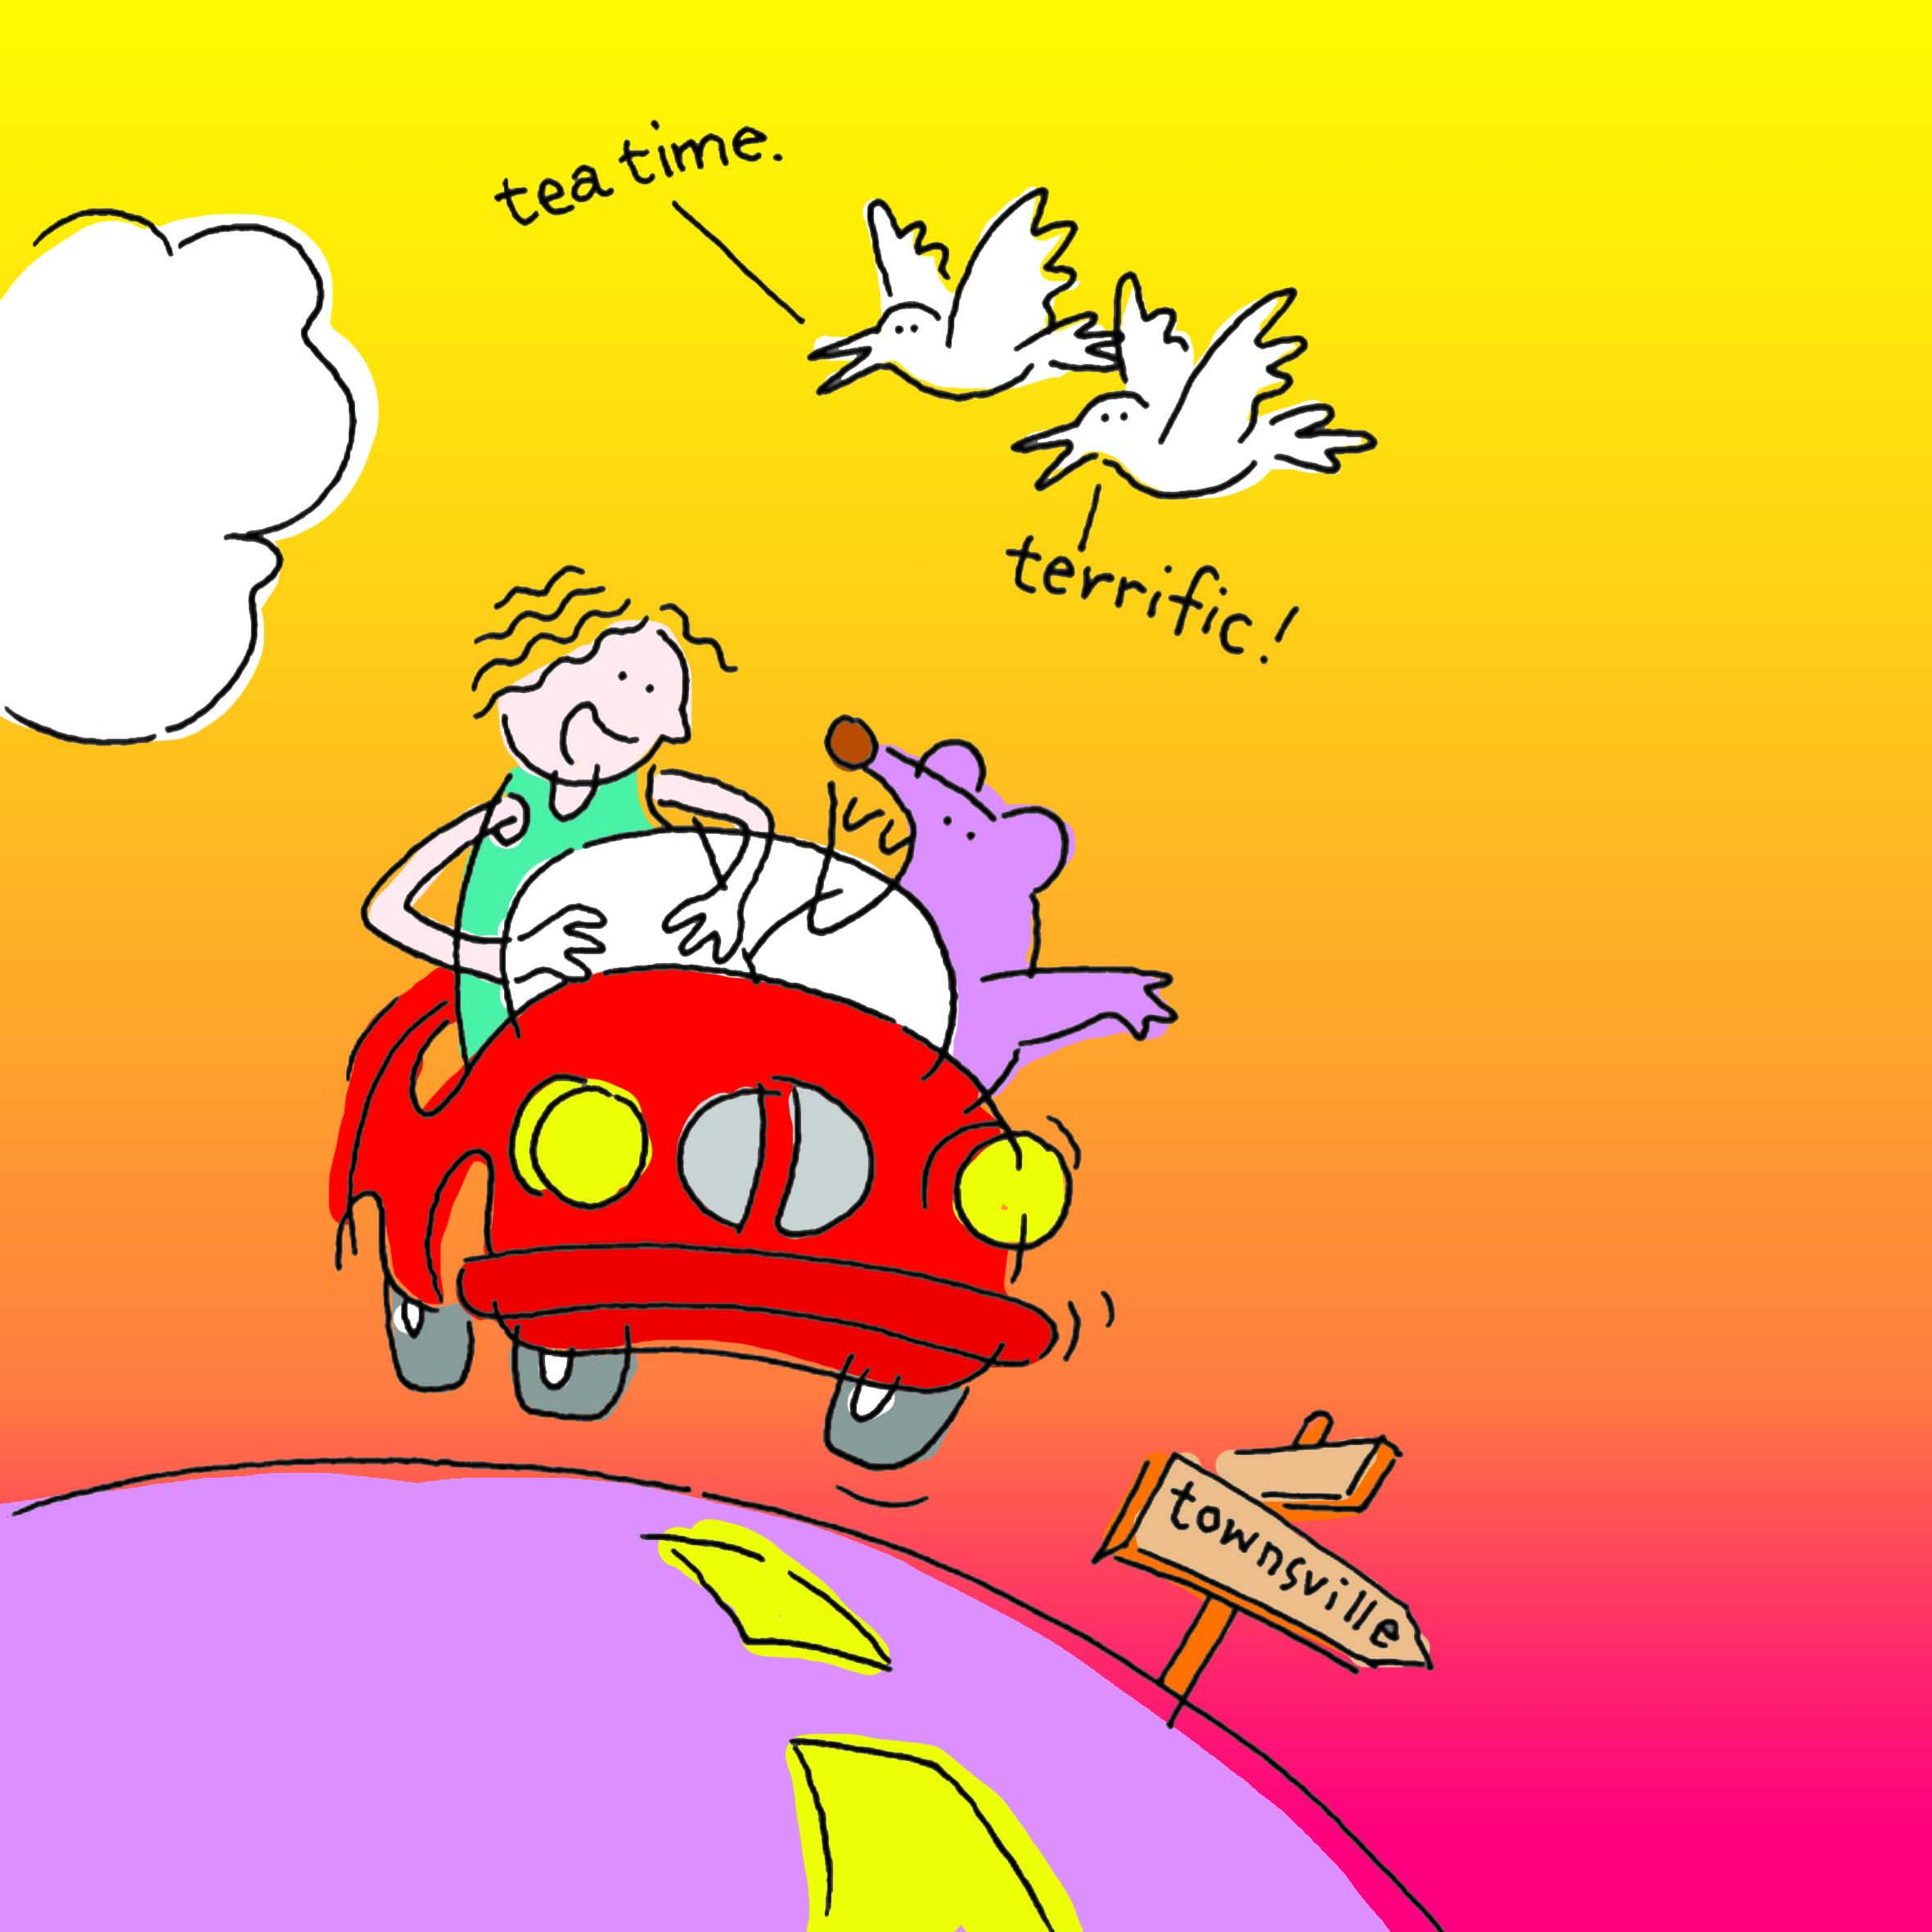 Children's book illustration with a car and birds.